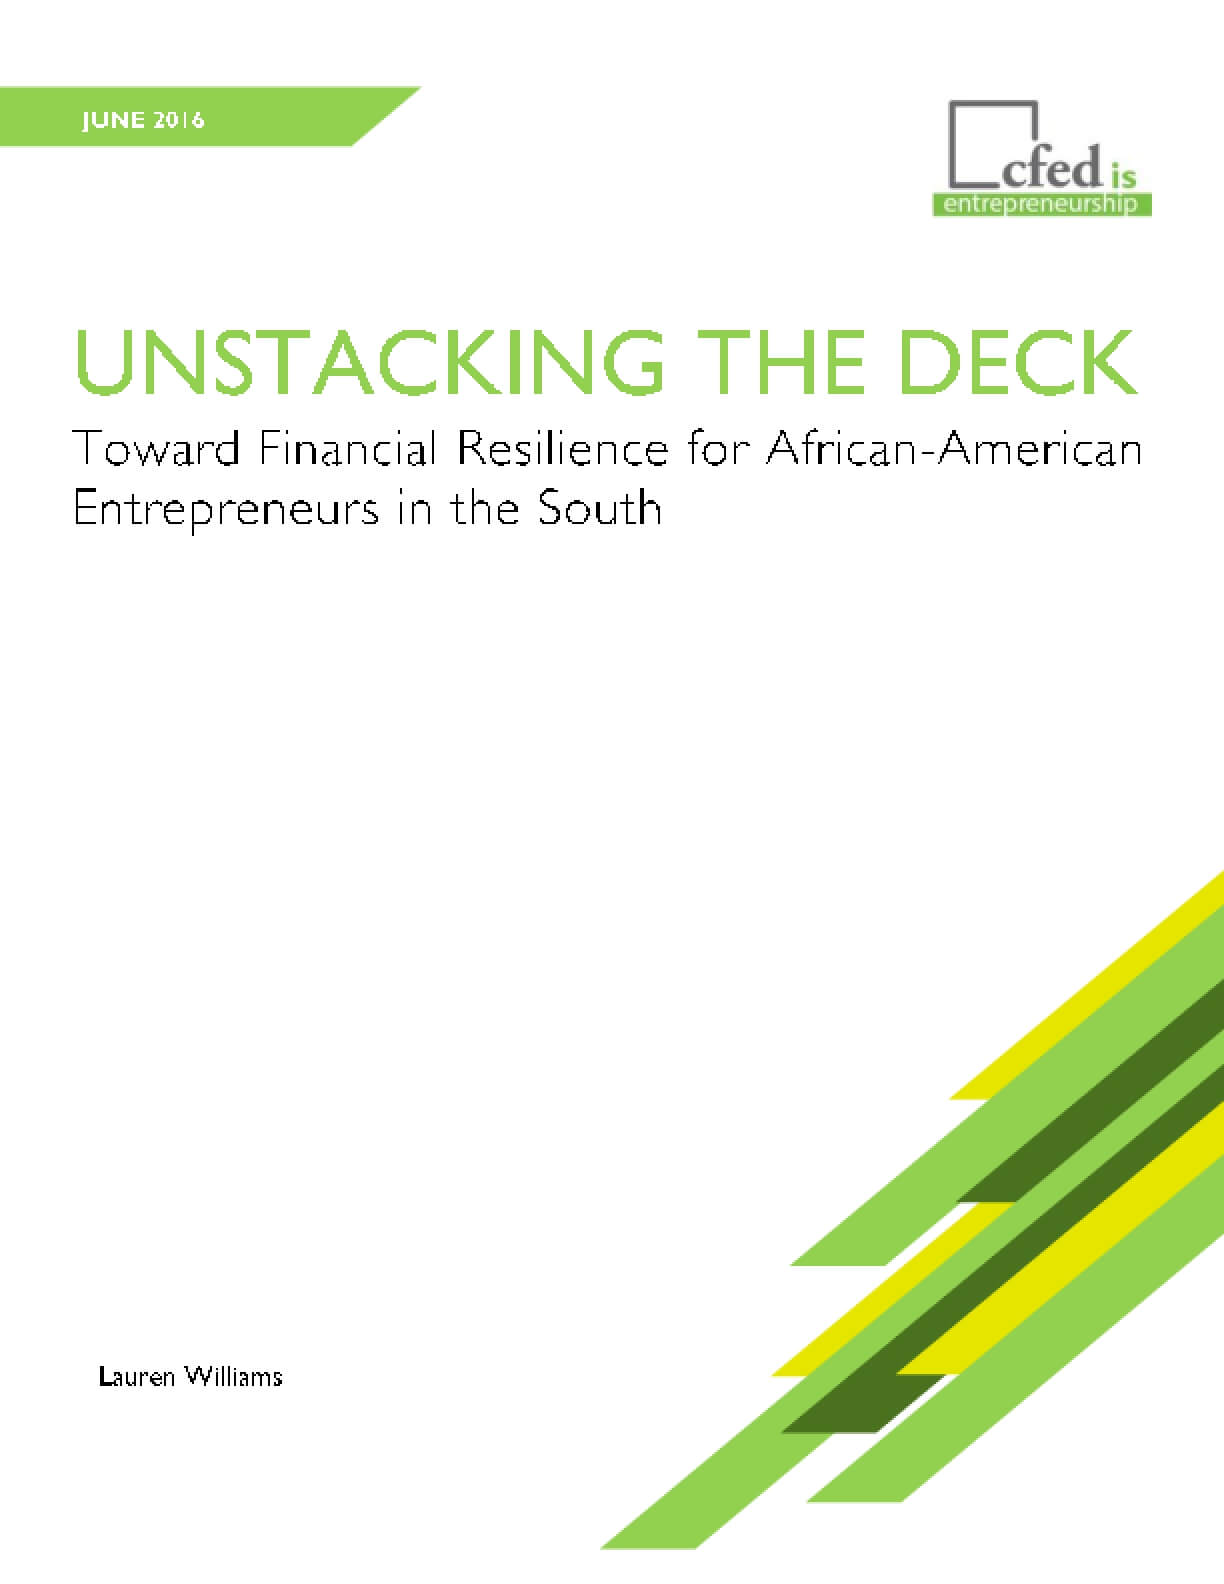 Unstacking the Deck: Toward Financial Resilience for African-American Entrepreneurs in the South